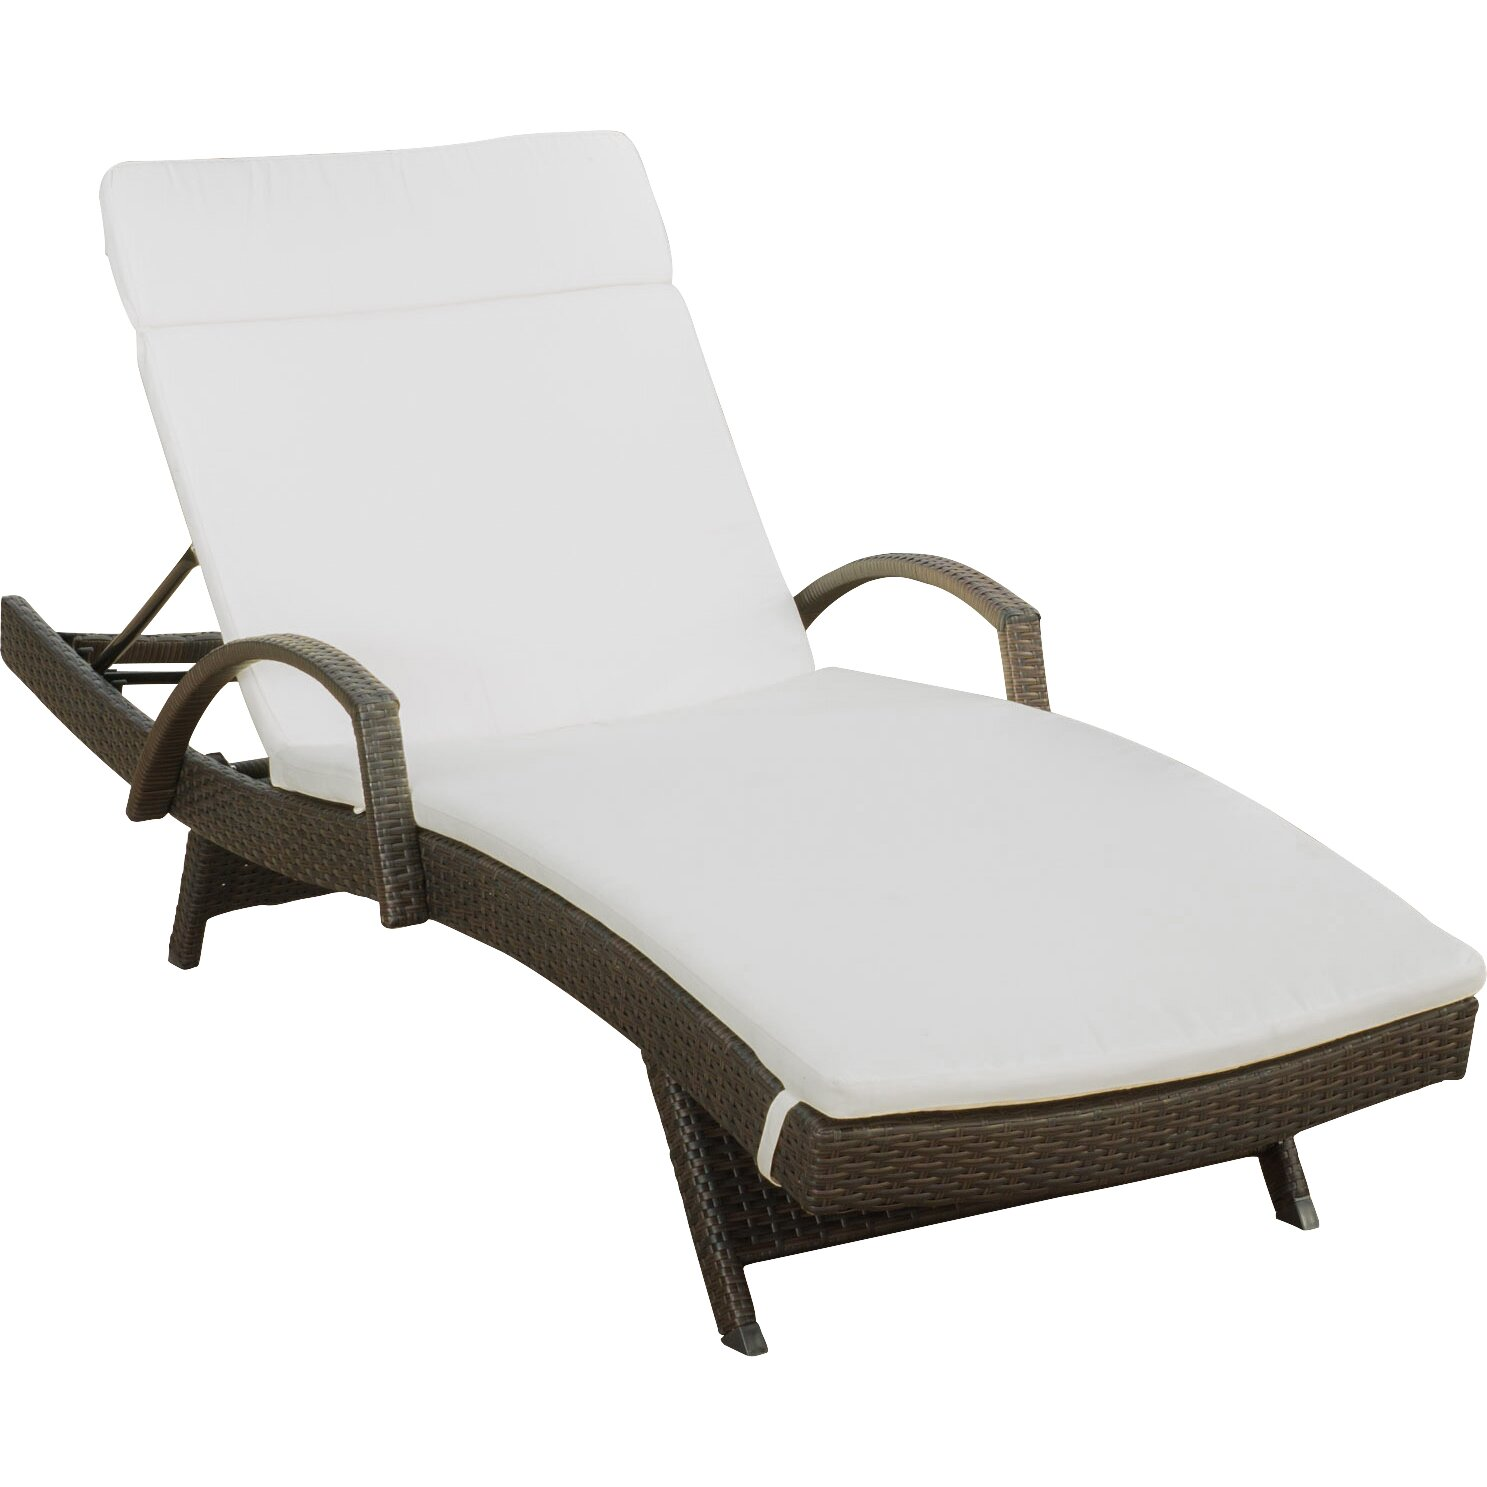 Darby home co luther chaise lounge with cushion reviews for Chaise lounge company